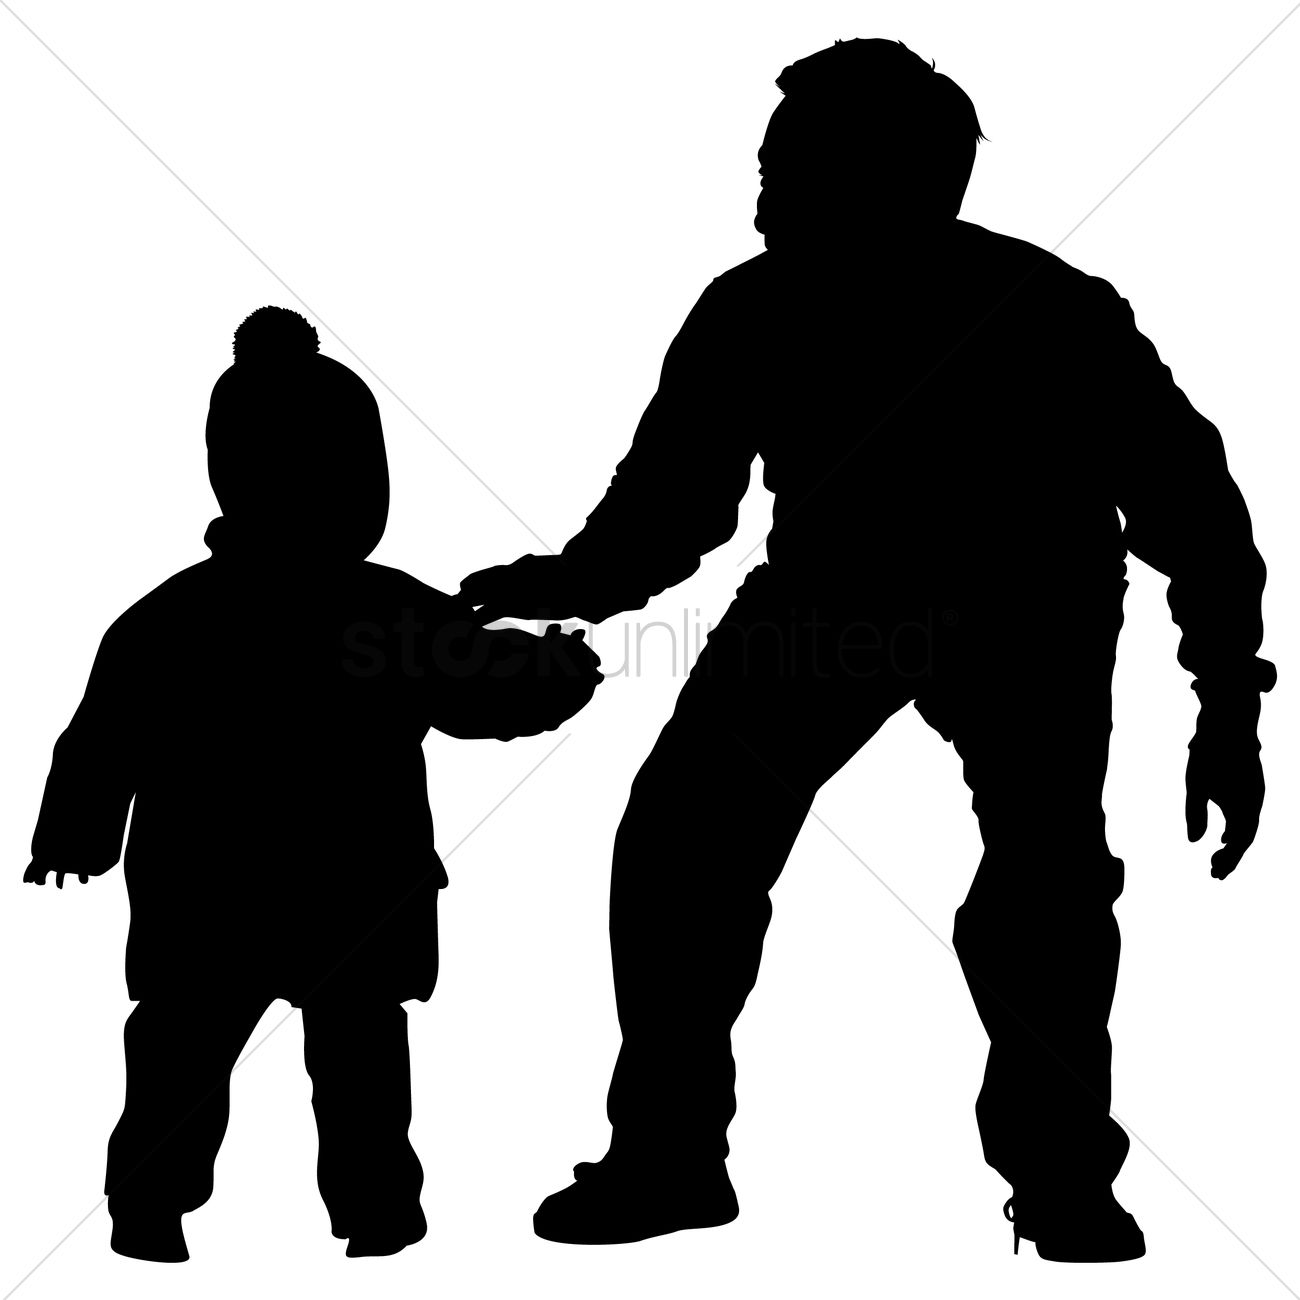 father silhouette silhouette of a father and son vector image 1463134 silhouette father